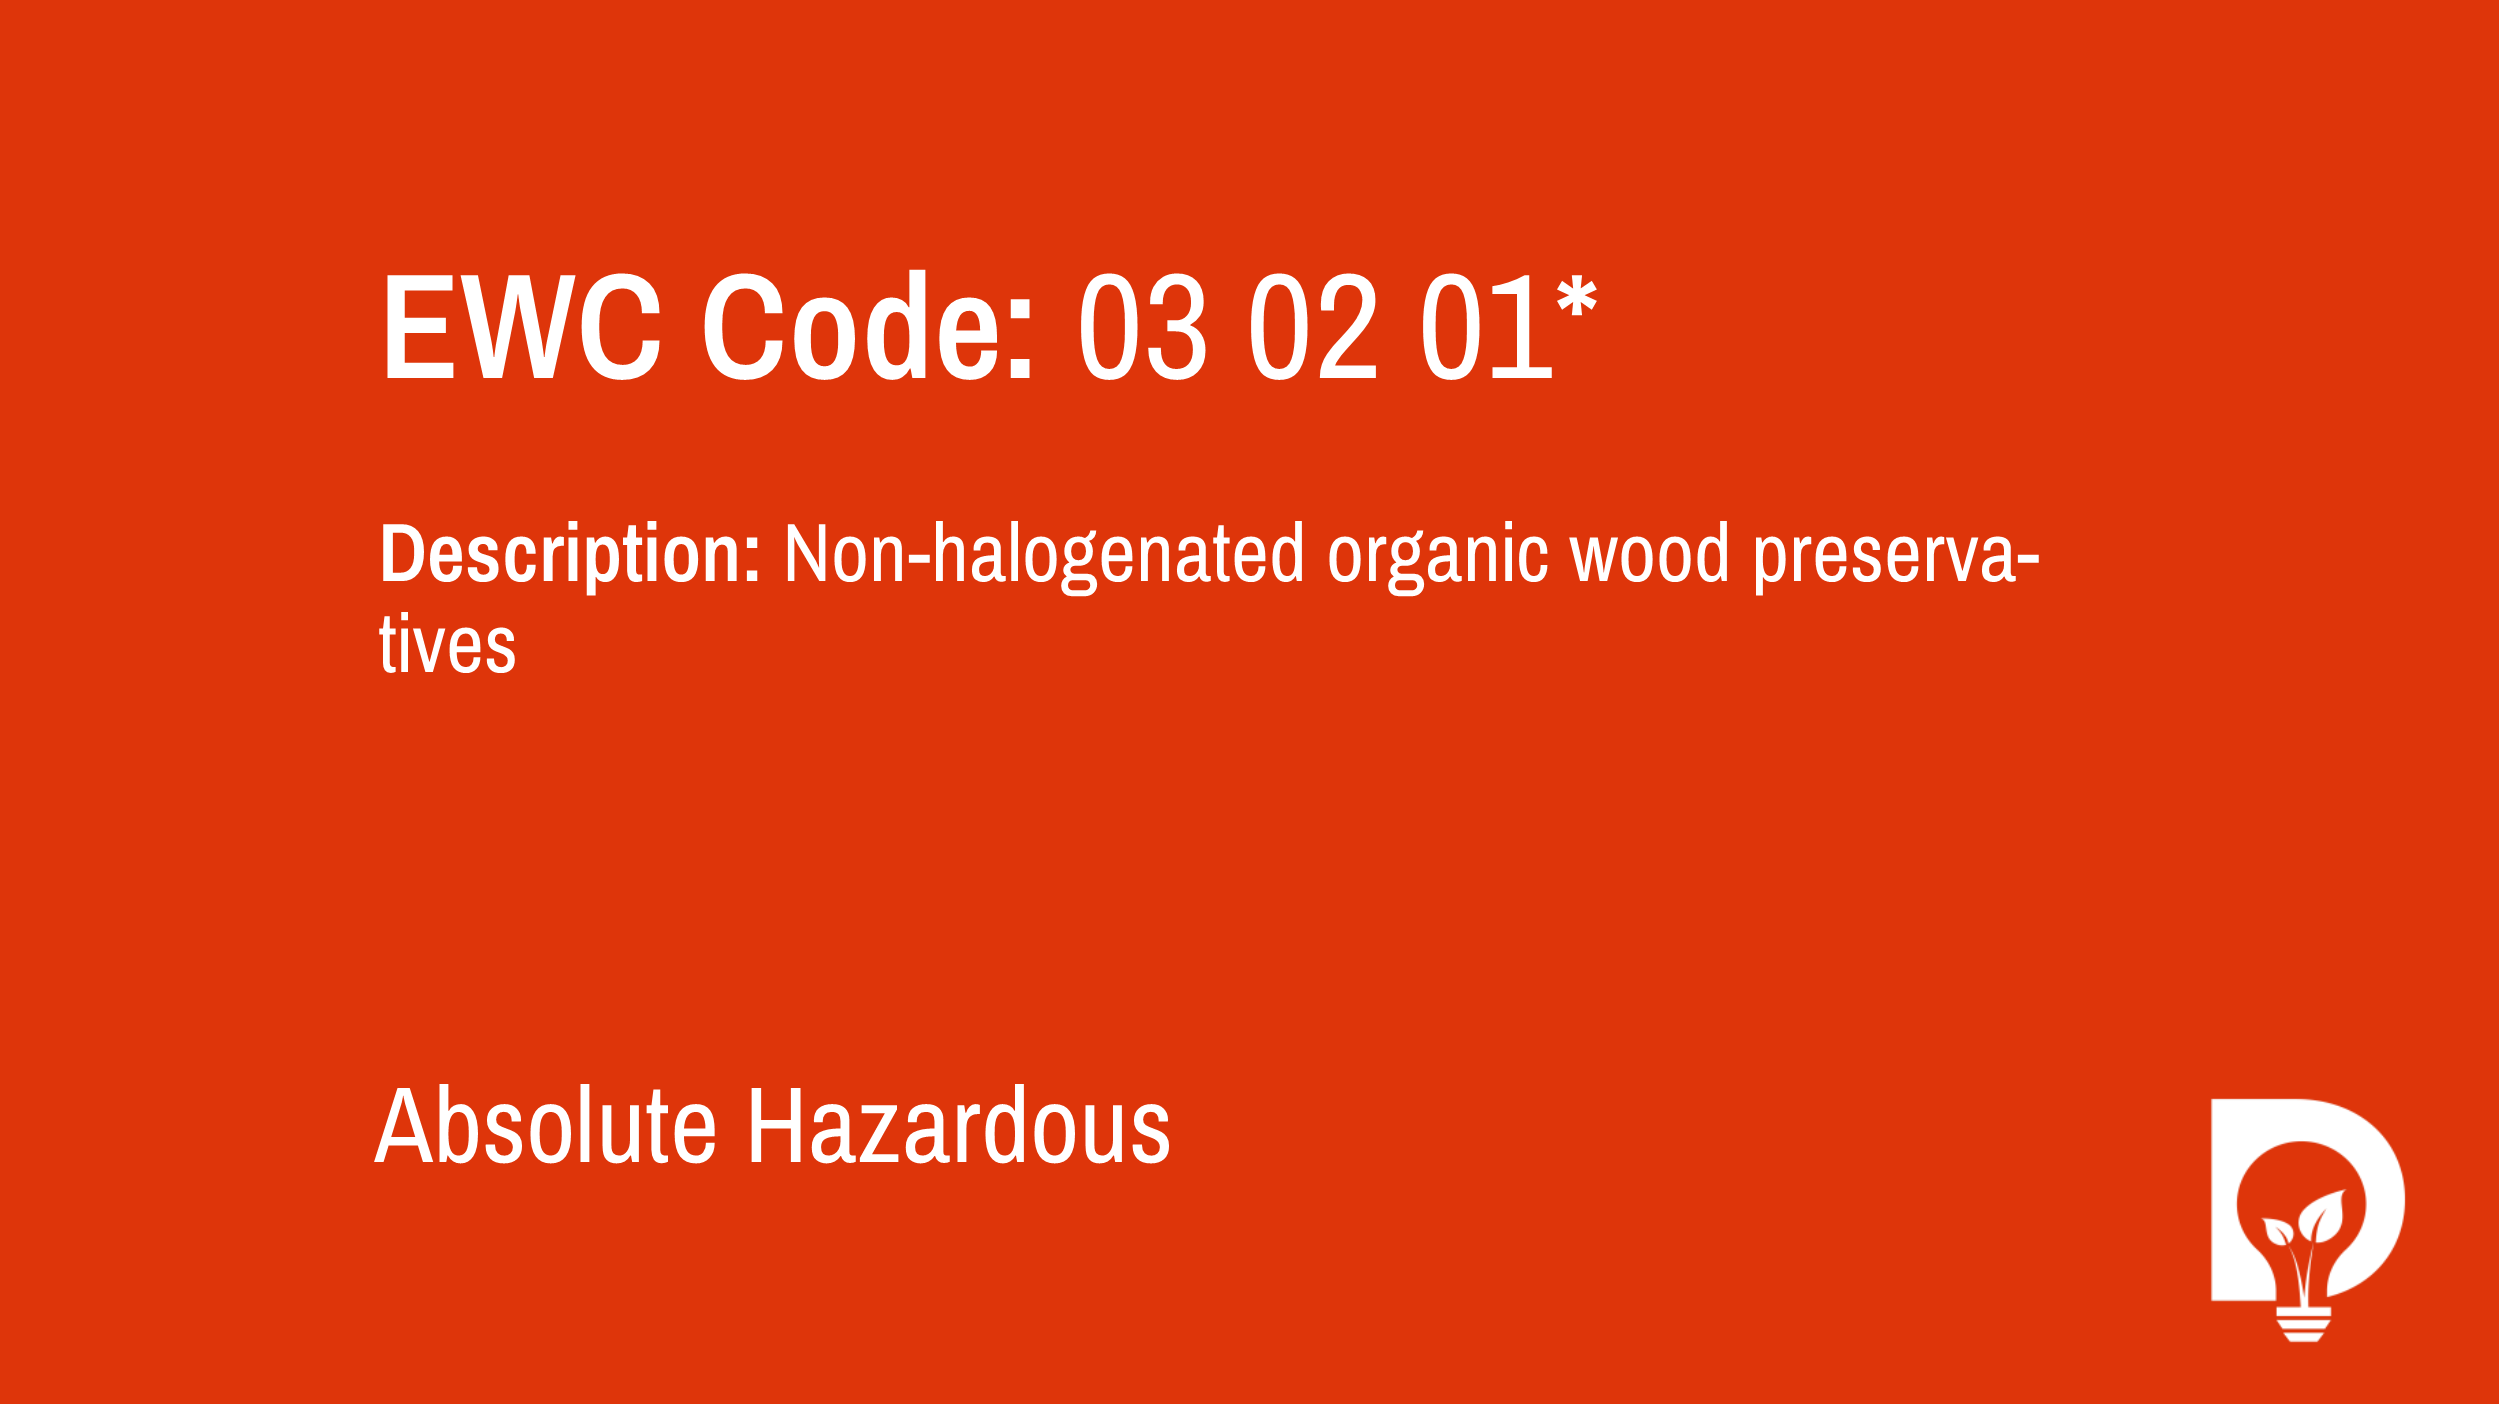 EWC Code: 03 02 01* - non-halogenated organic wood preservatives. Type: Absolute Hazardous. Image by Dsposal